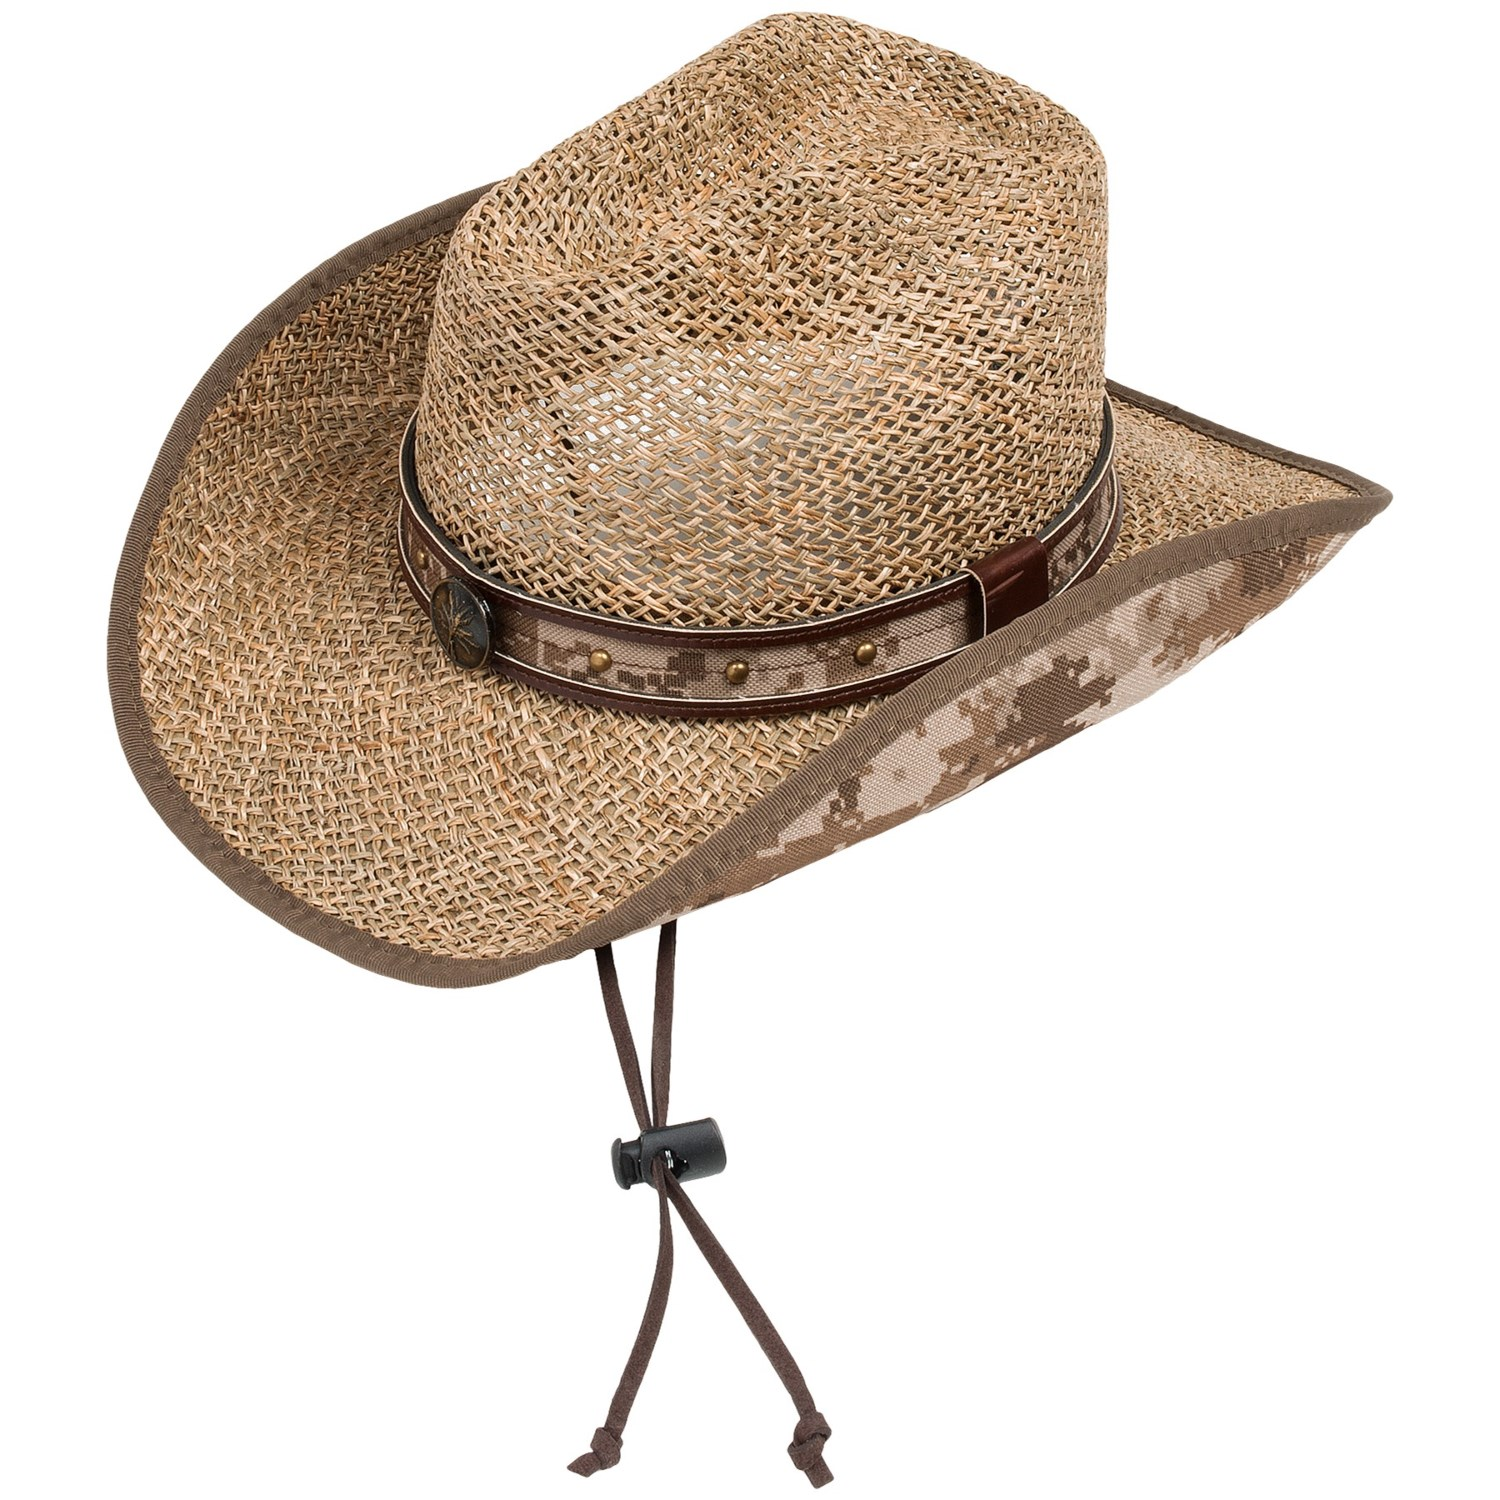 kenny chesney blue chair bay hats dx razor for sale download images photos and